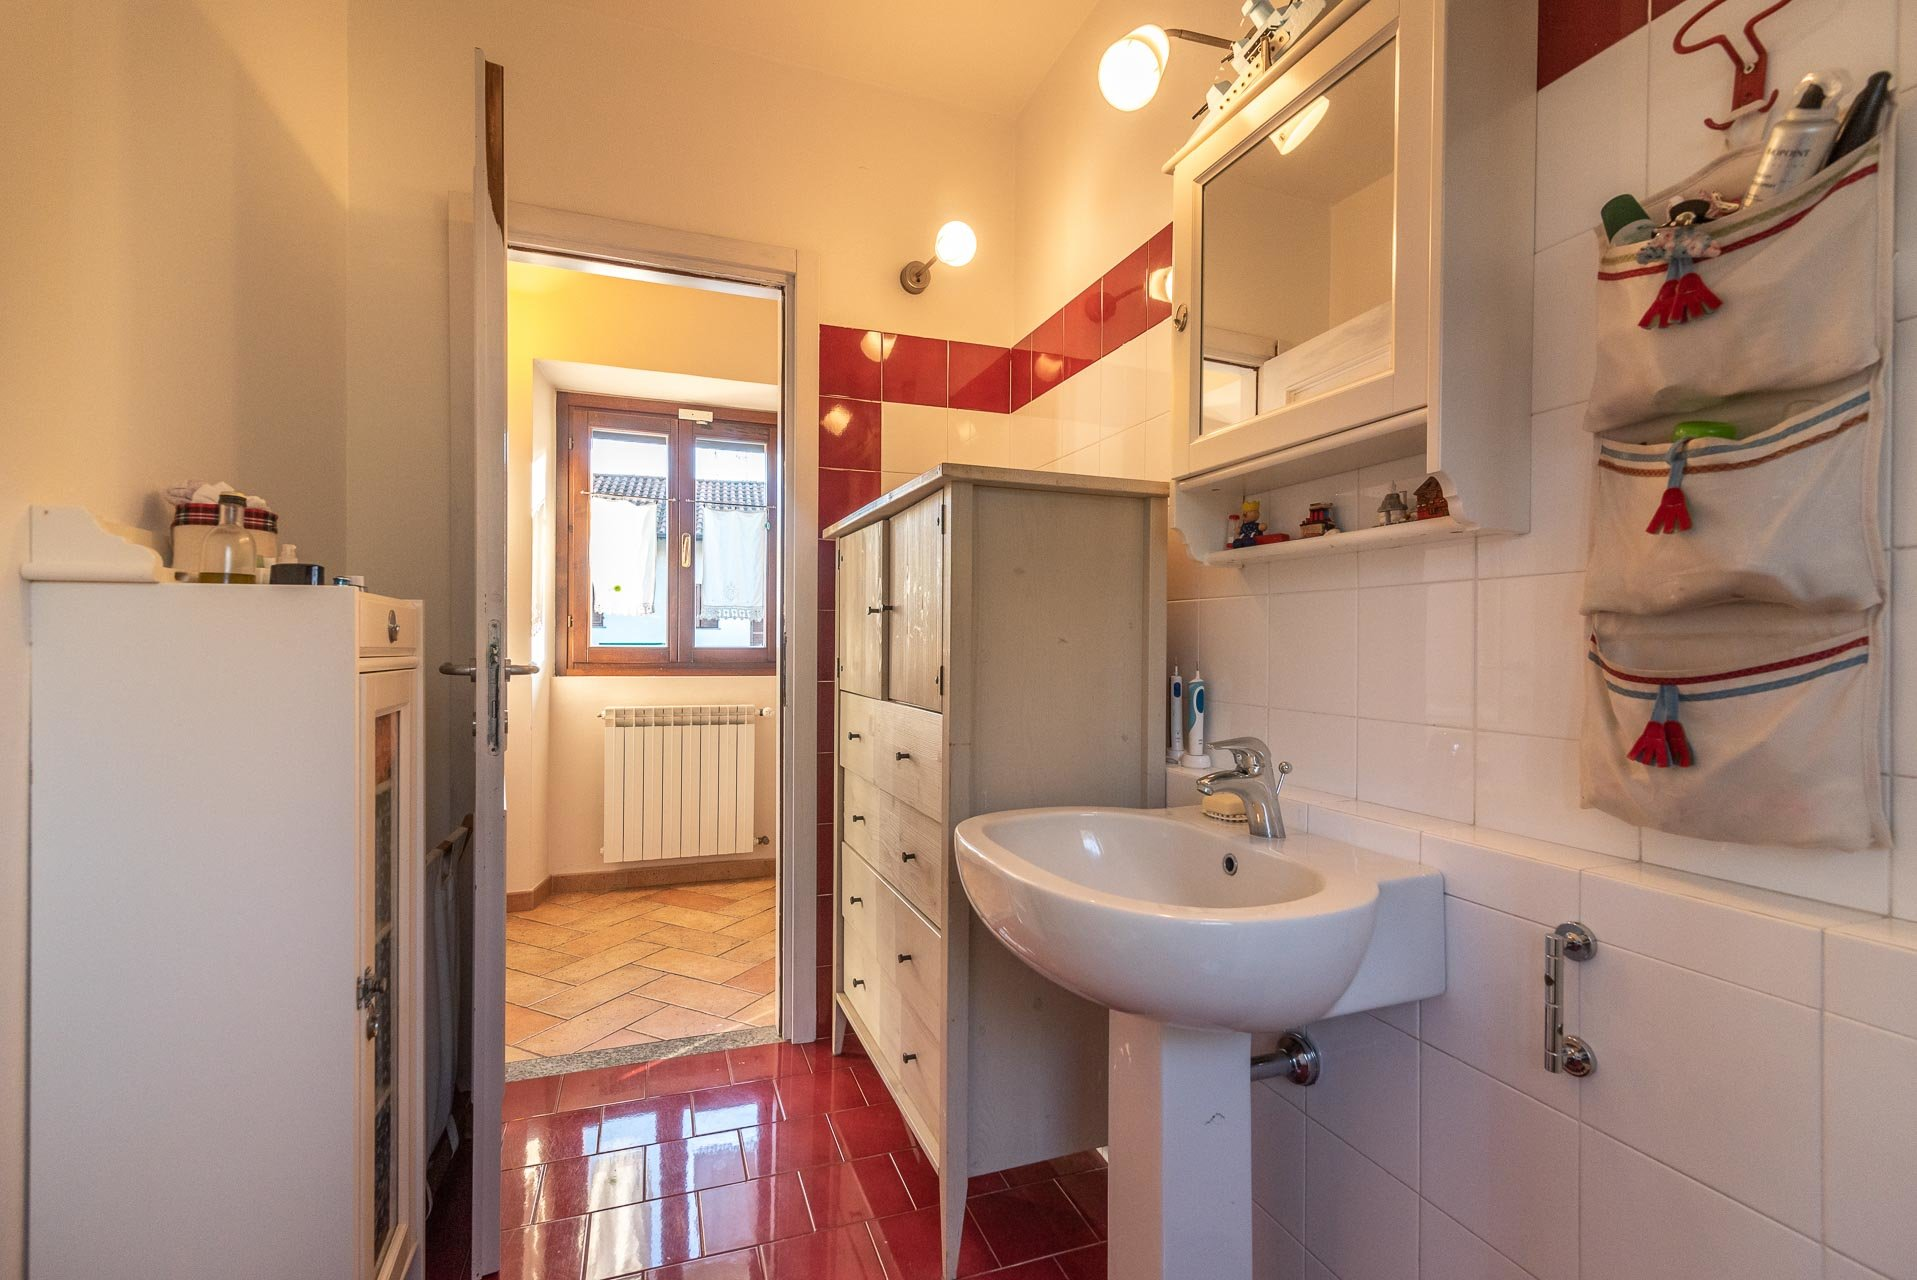 Country house for sell in Paruzzaro - bathroom